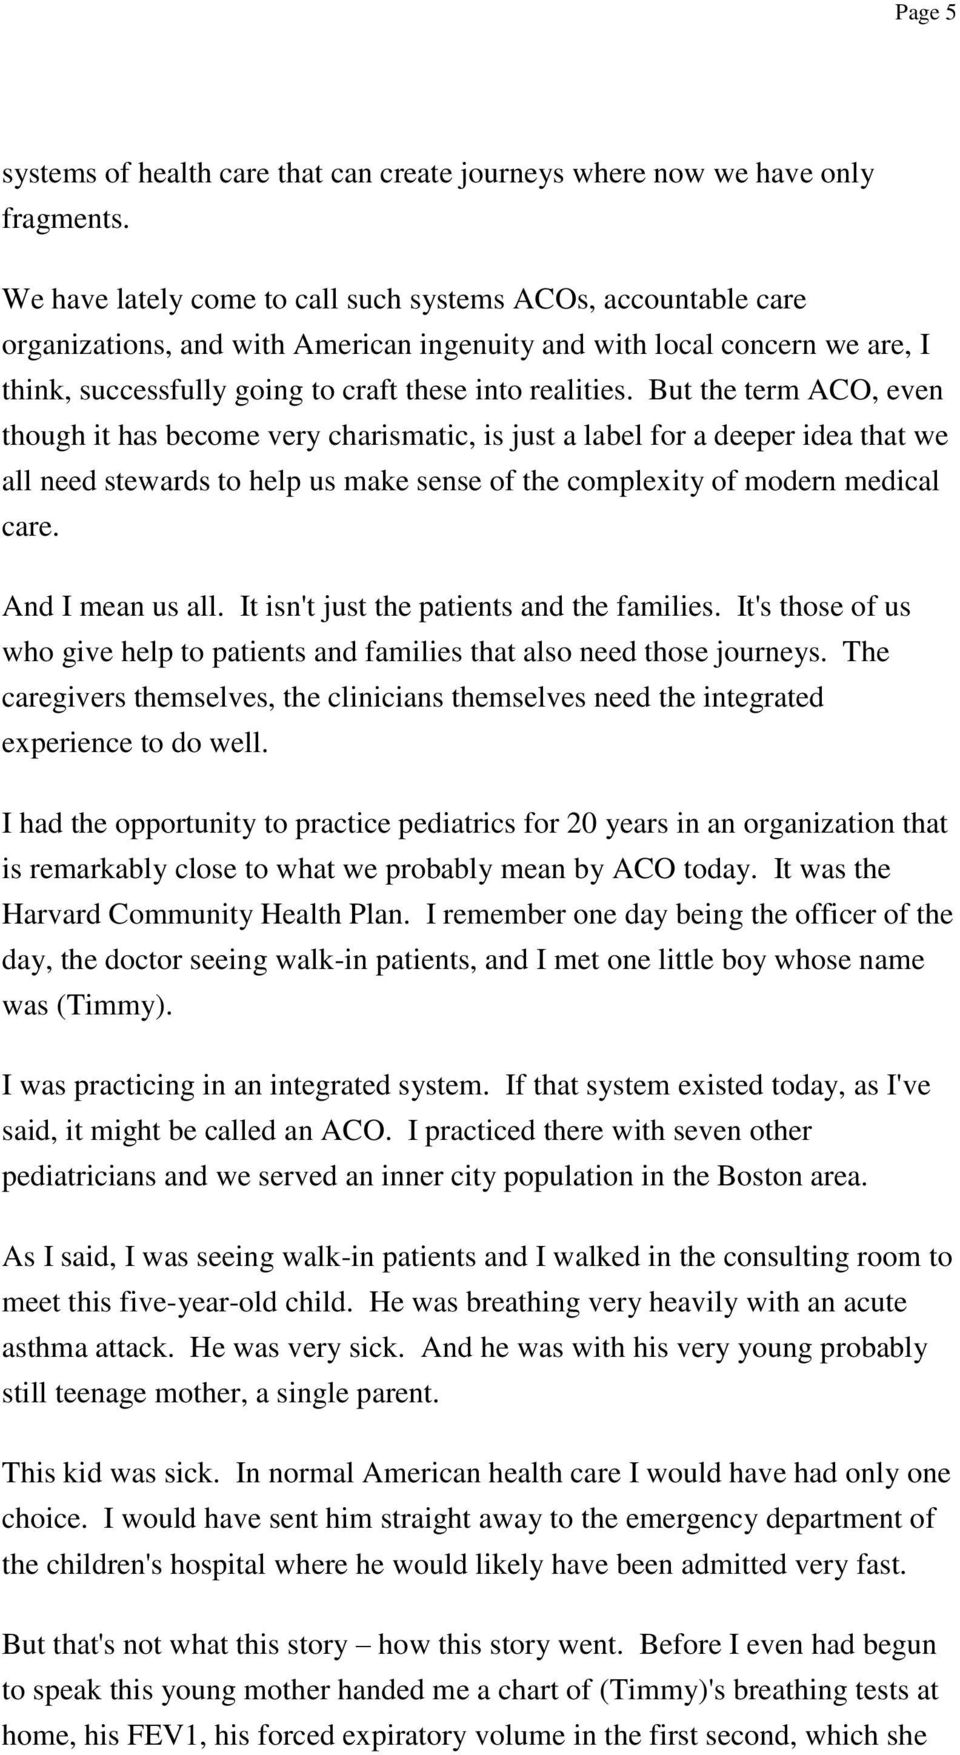 But the term ACO, even though it has become very charismatic, is just a label for a deeper idea that we all need stewards to help us make sense of the complexity of modern medical care.